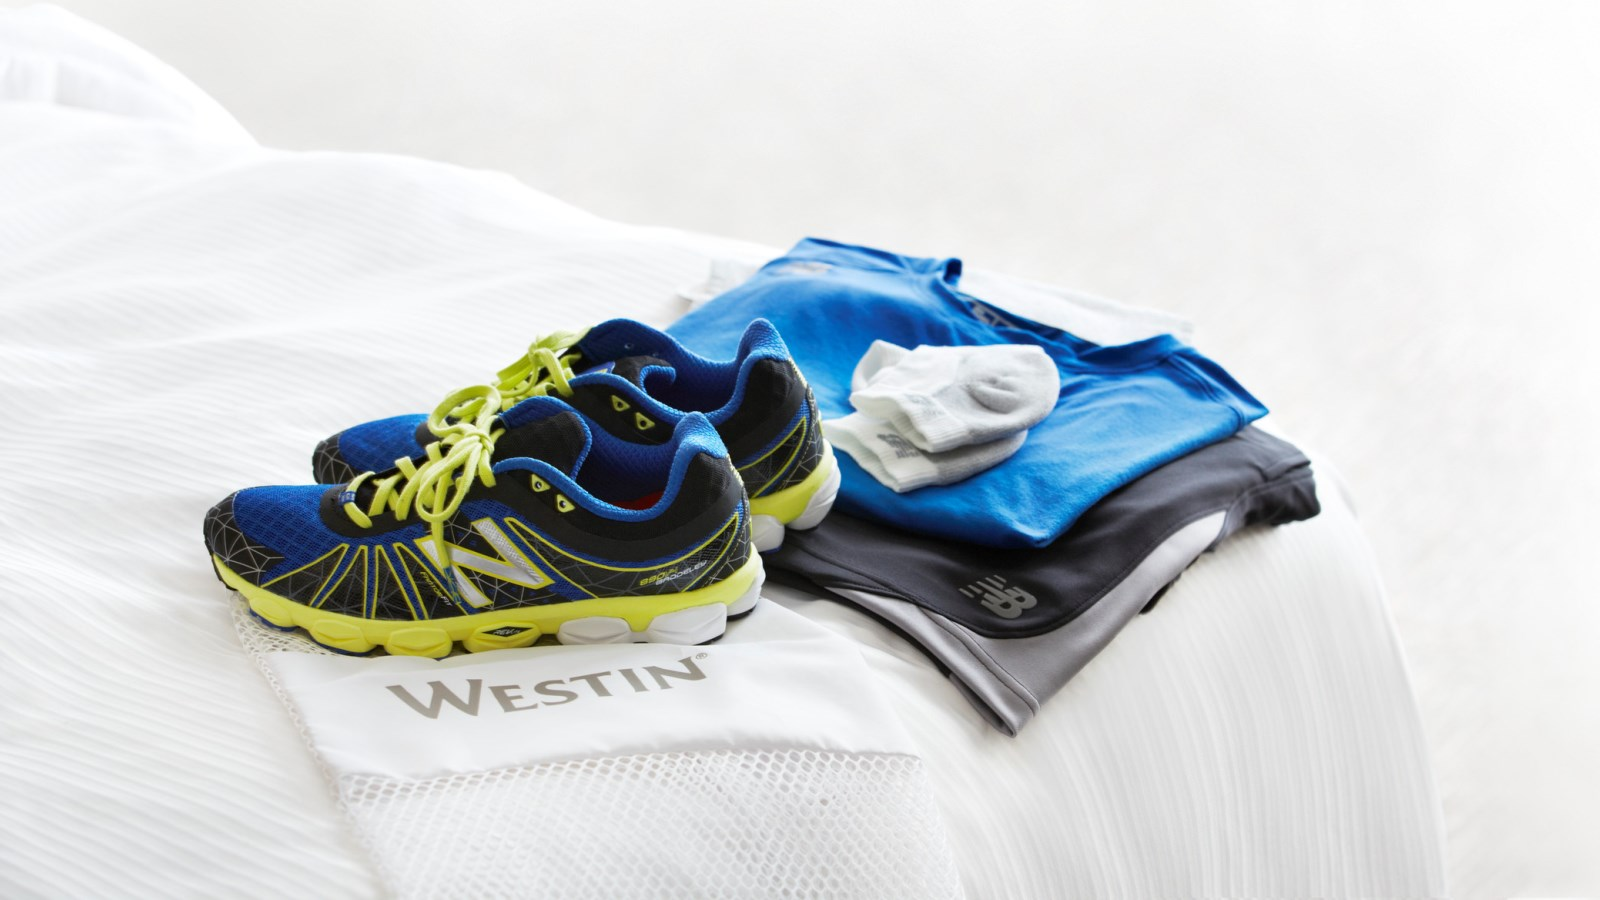 Westin Nashville | Run | Fitness